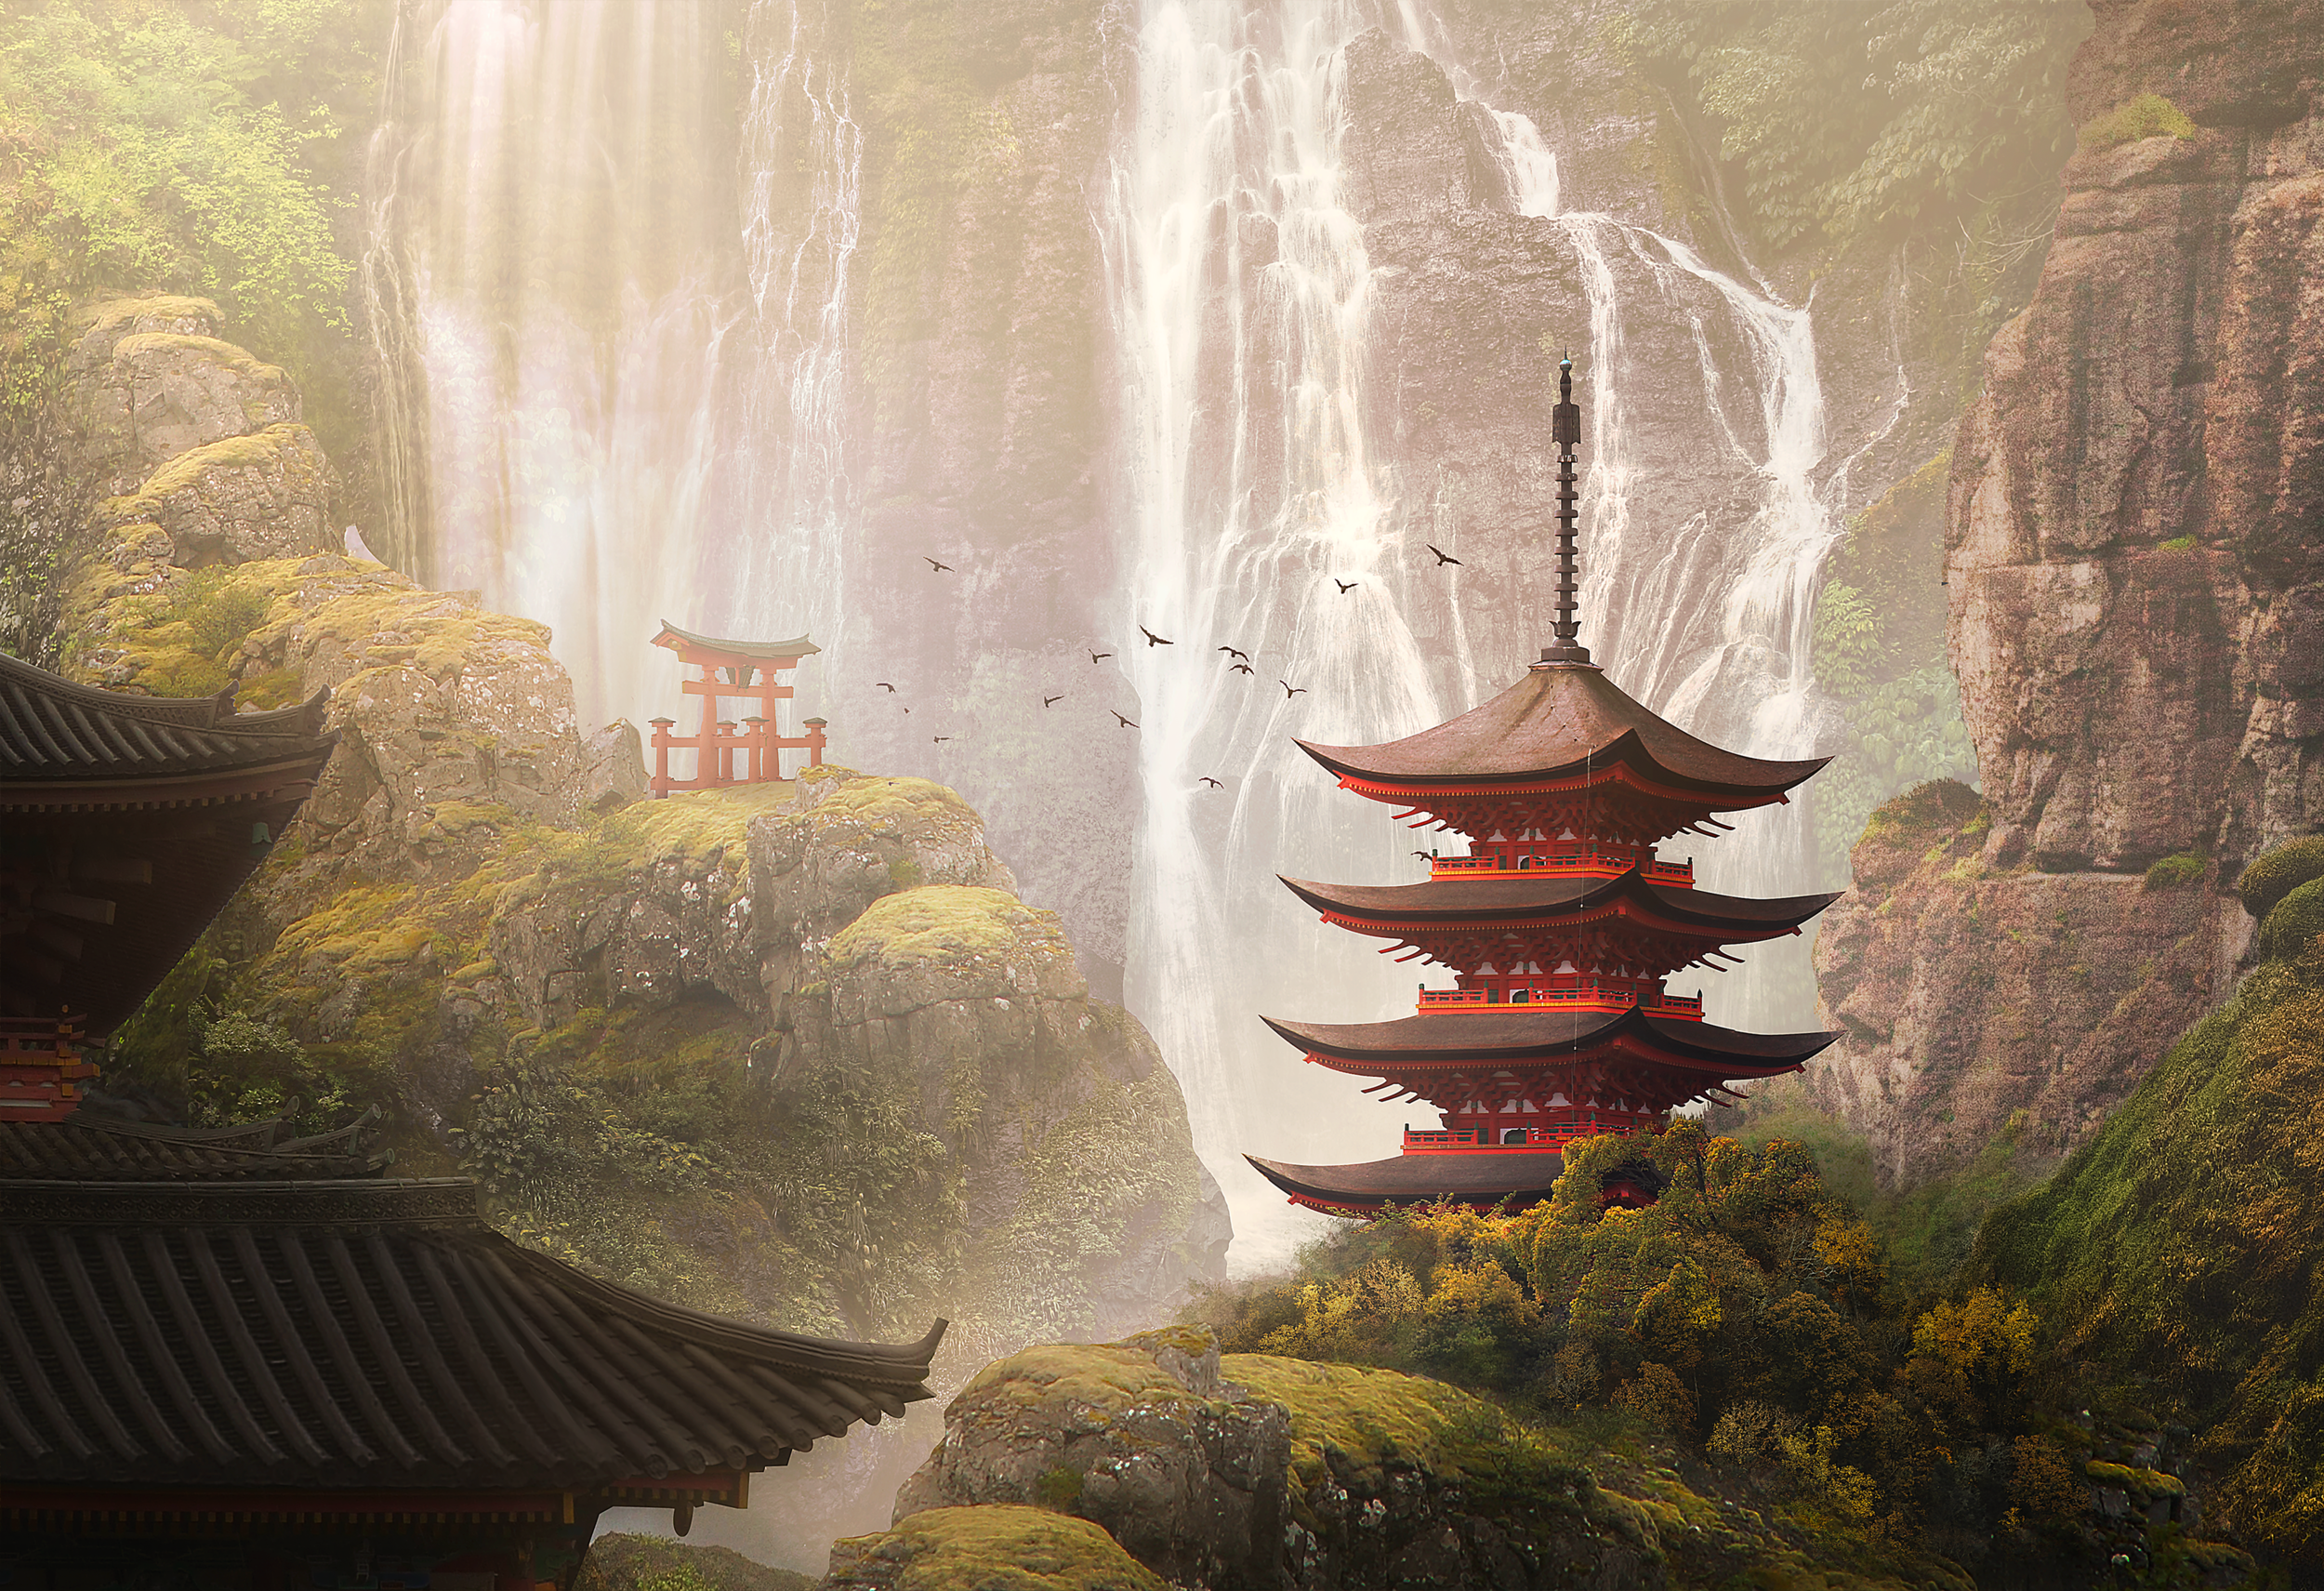 matte painting for my digital imaging class